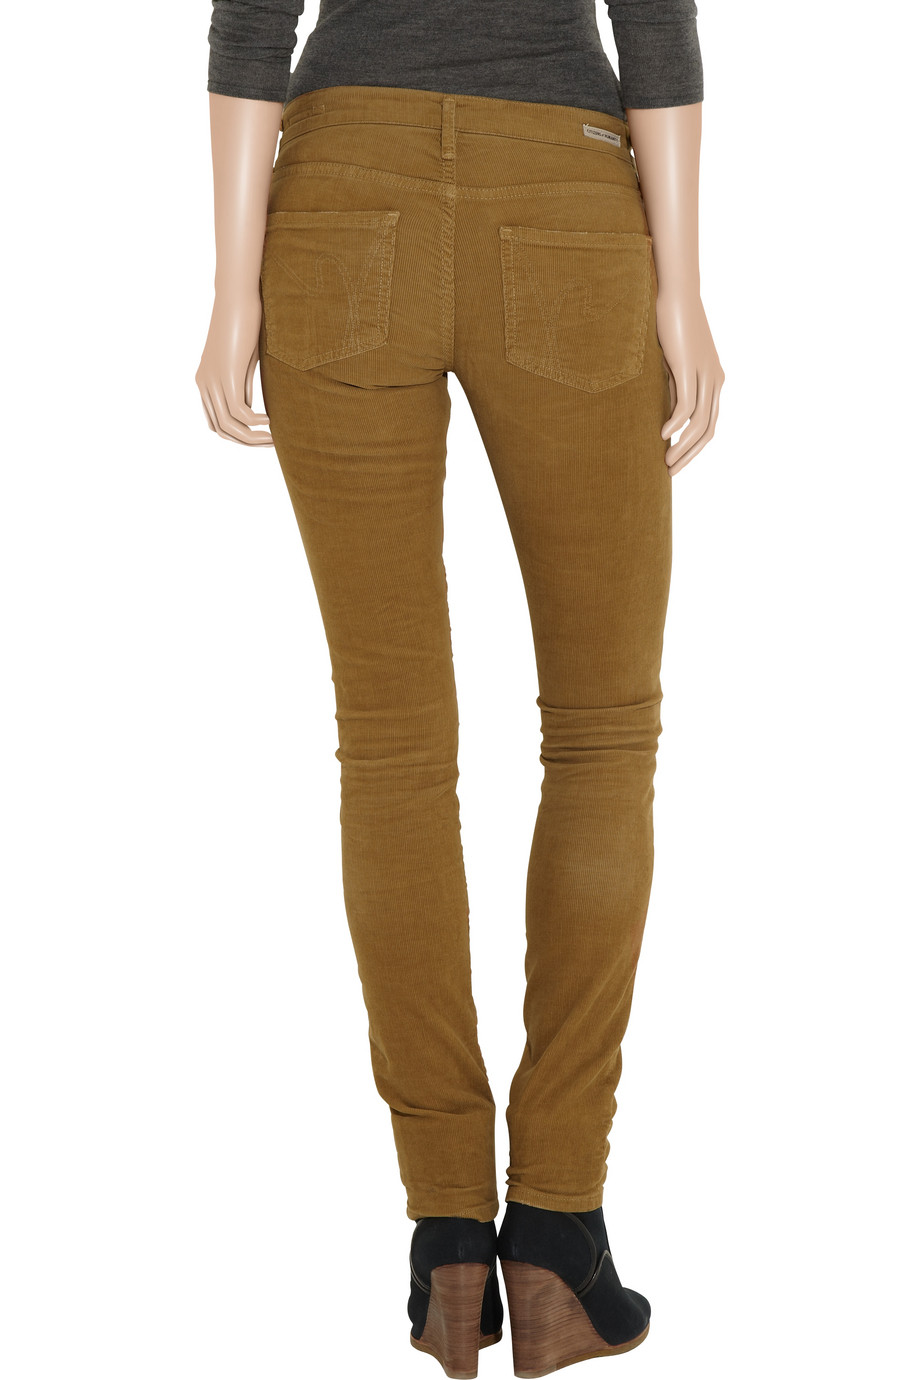 citizens of humanity avedon skinny corduroy pants in brown. Black Bedroom Furniture Sets. Home Design Ideas